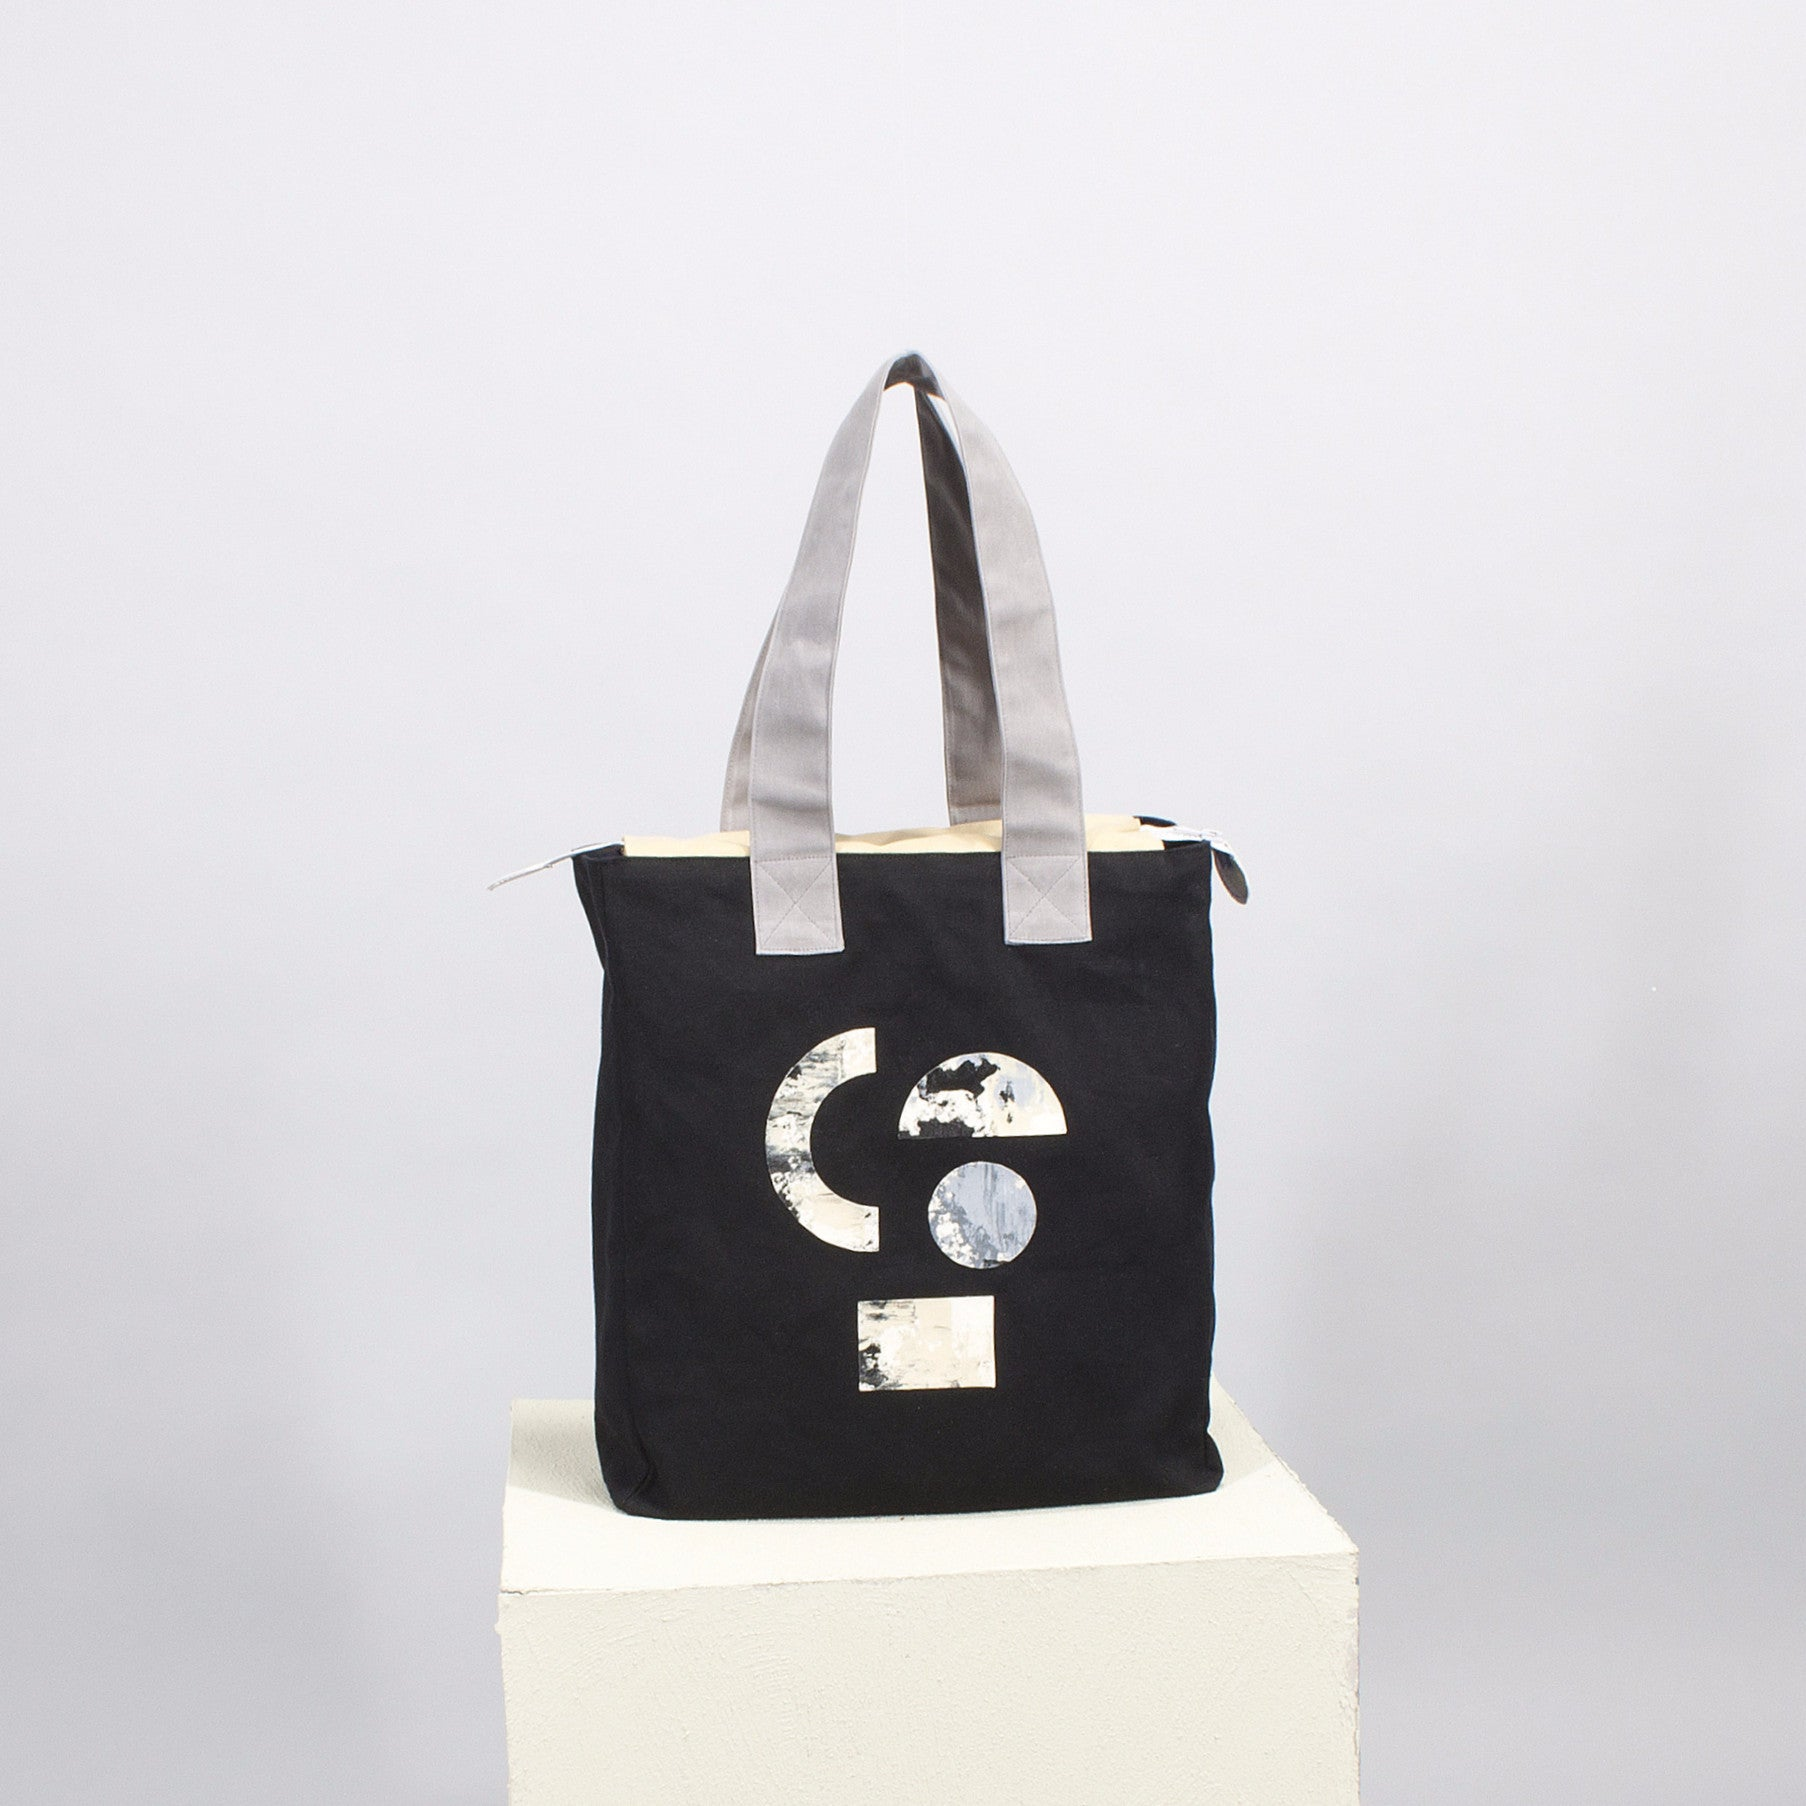 'Cut out' square tote - black